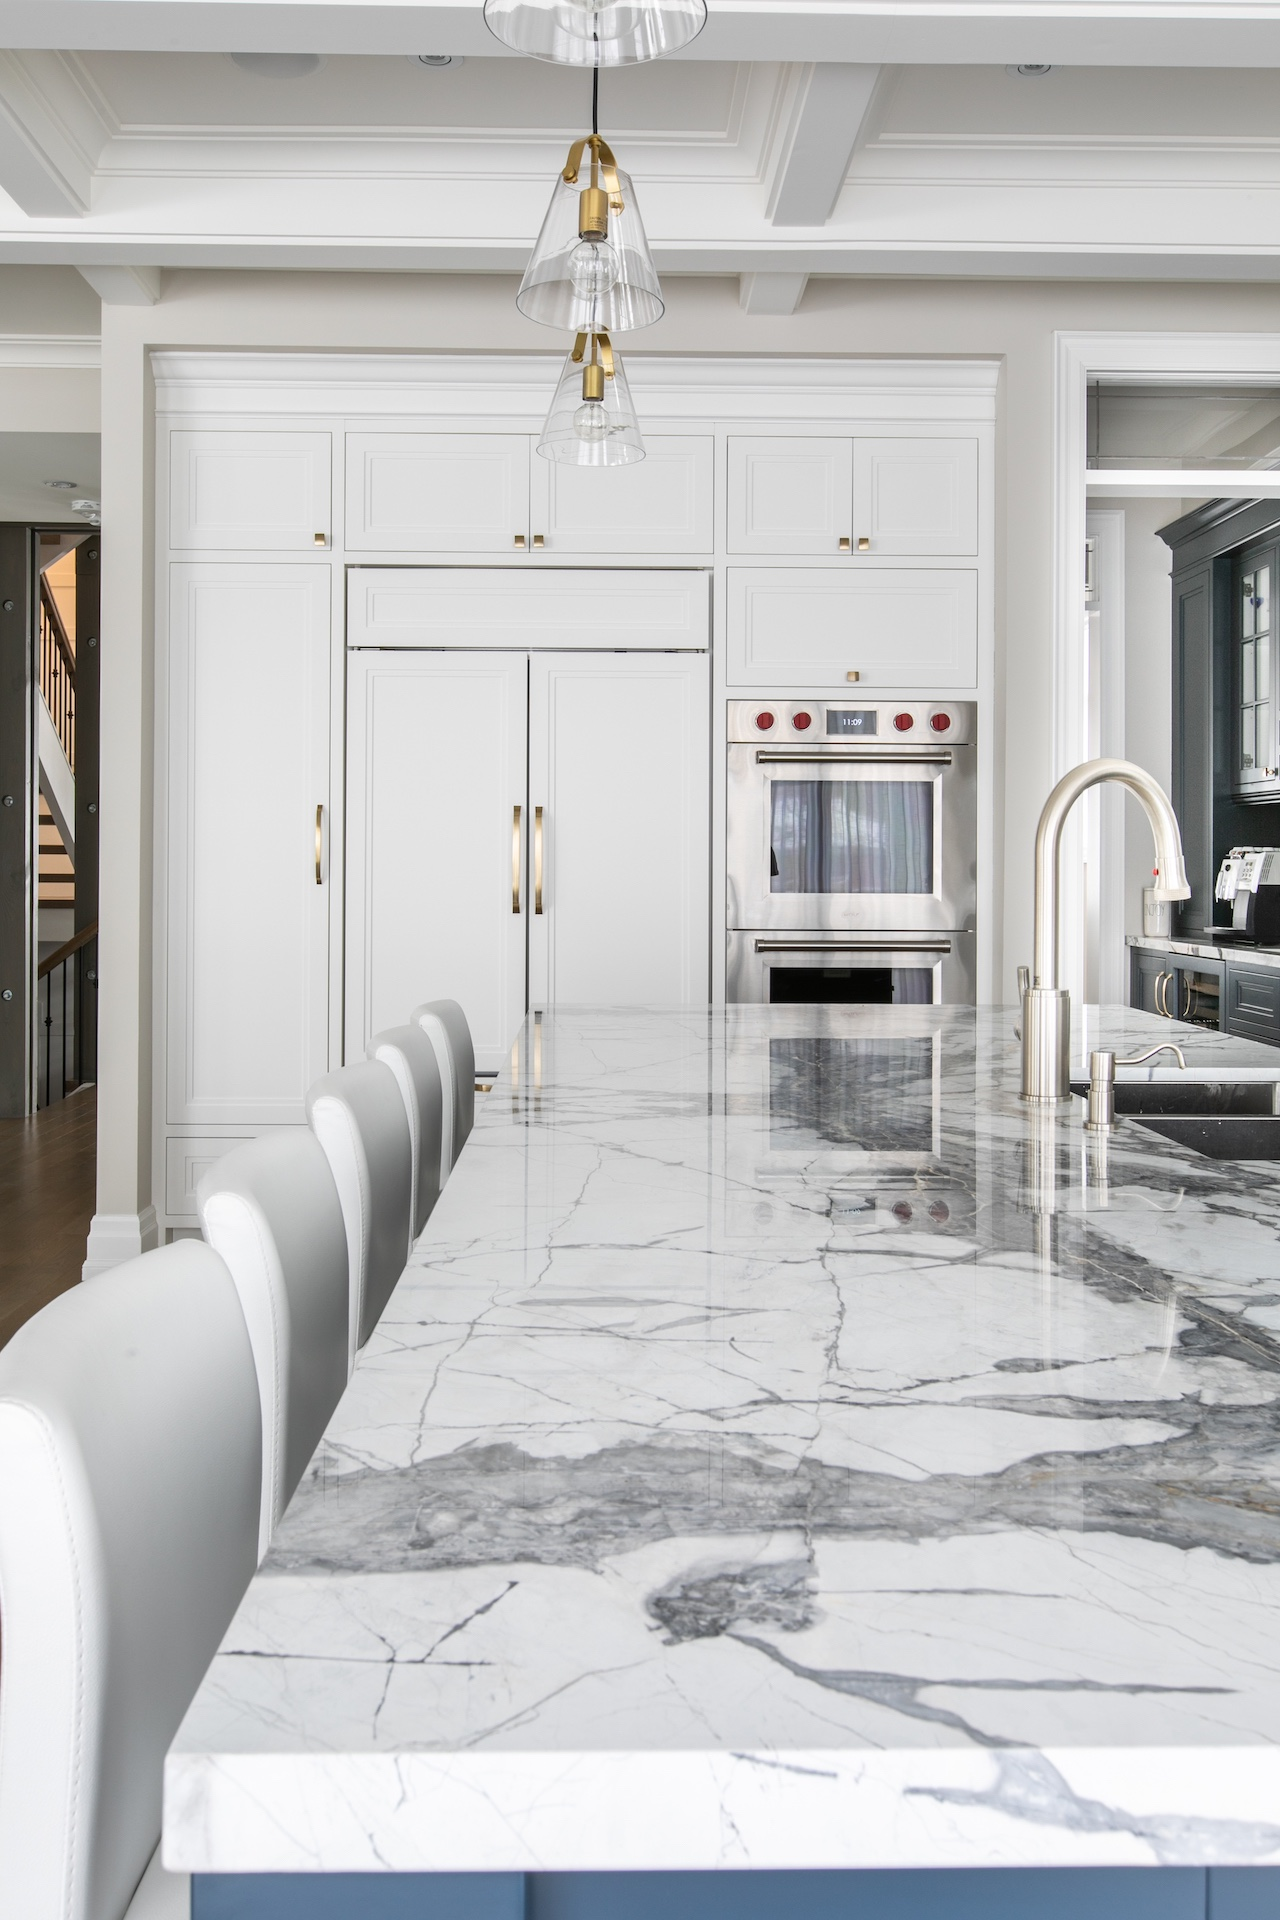 Marble island counter